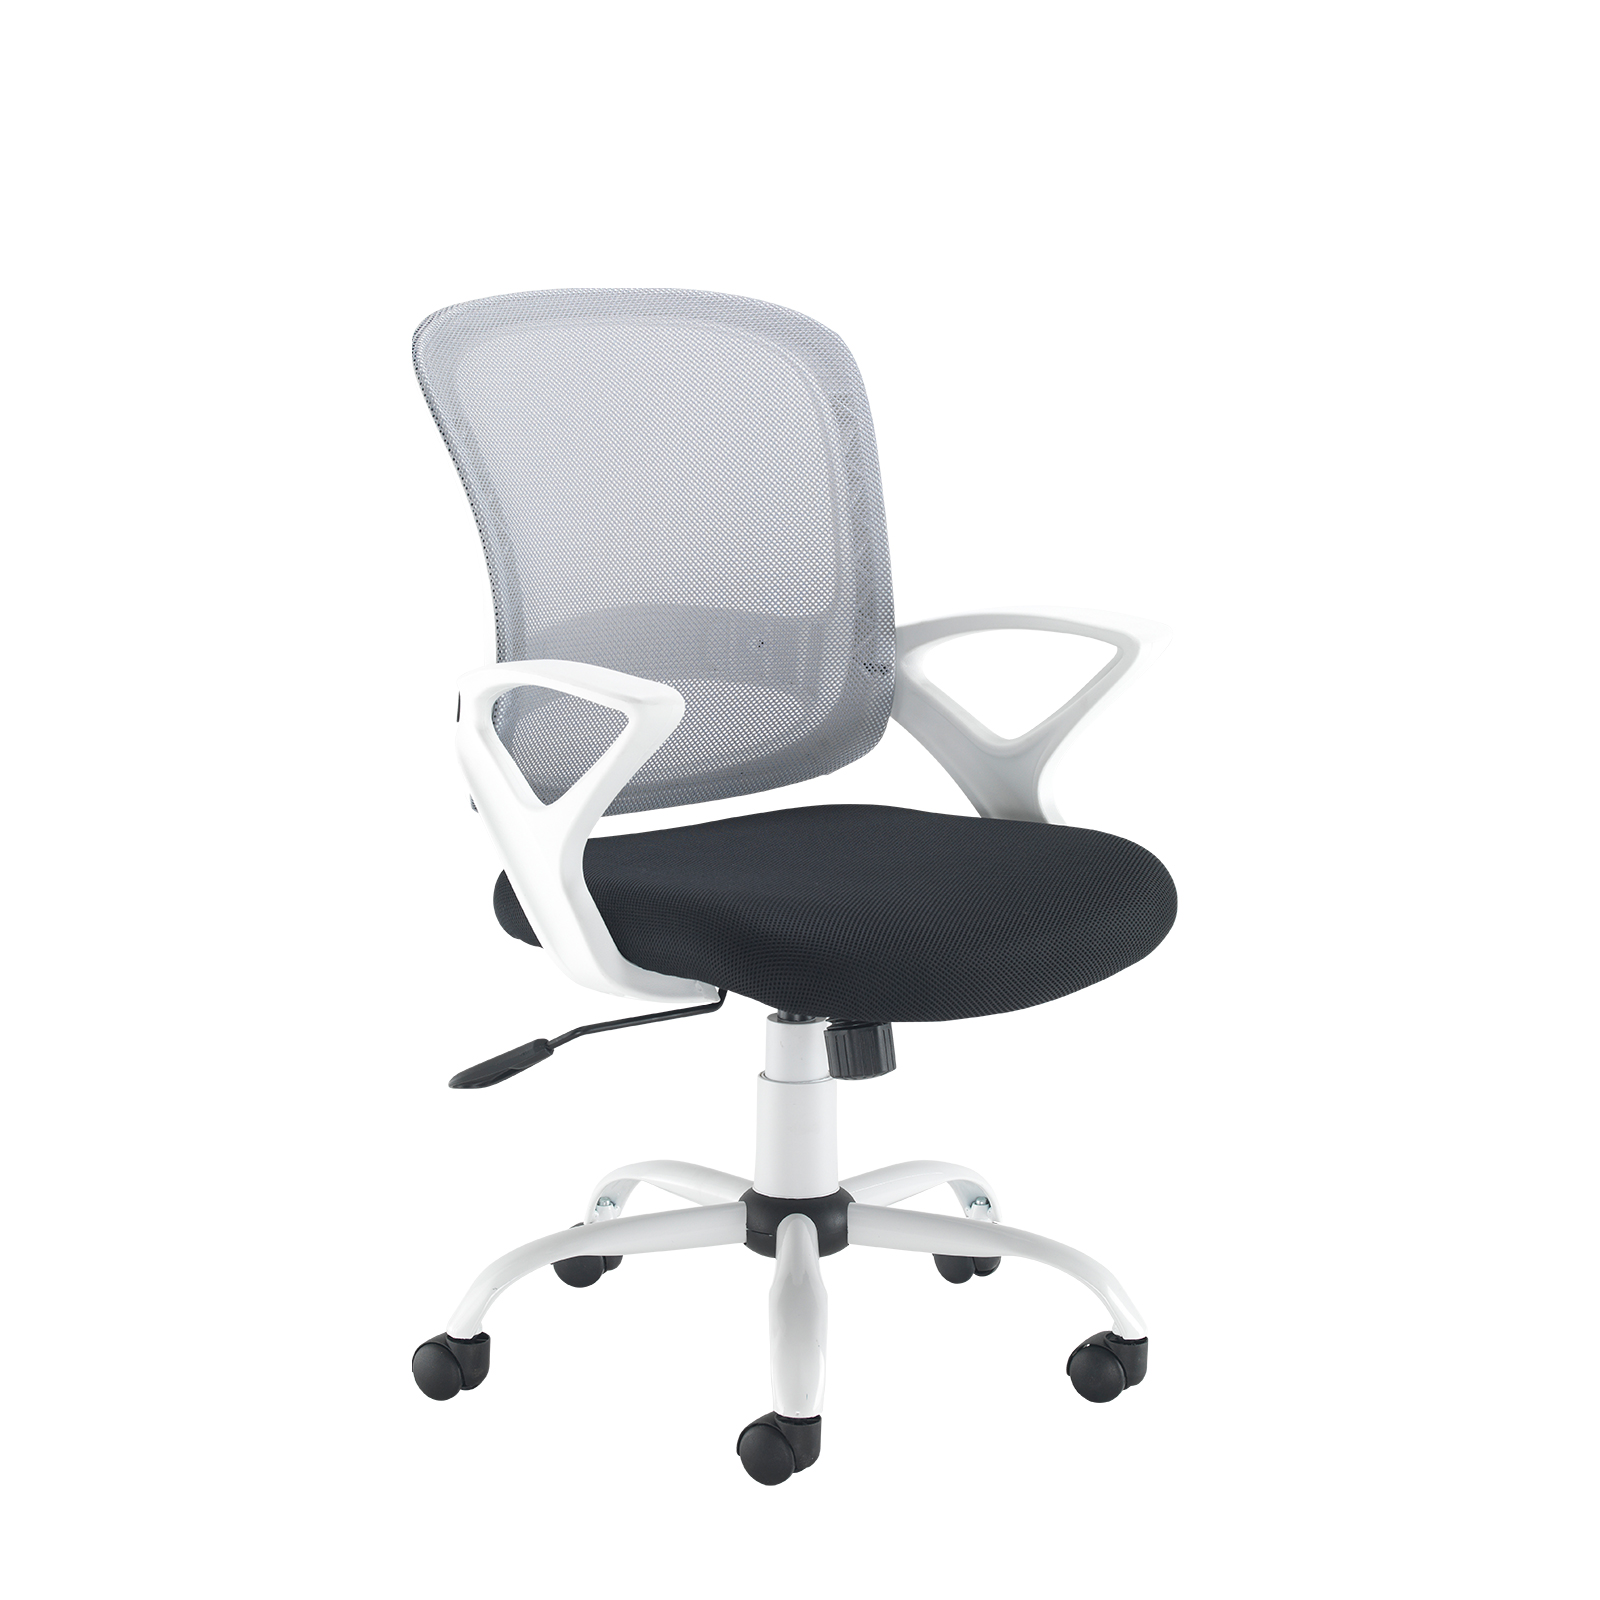 Tyler mesh back operator chair with white frame